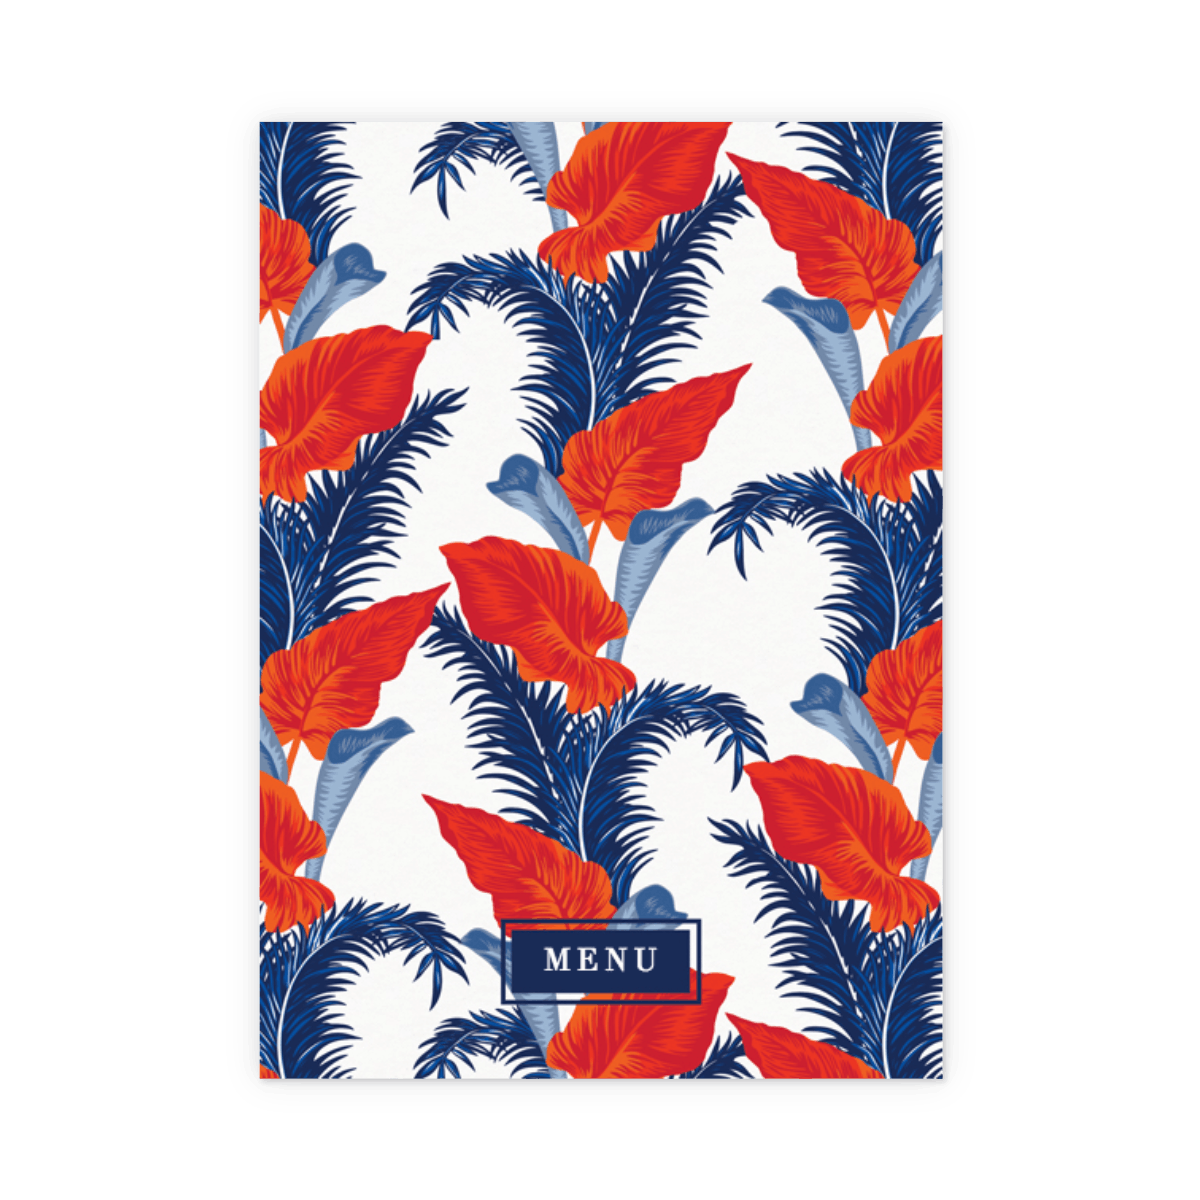 Https%3a%2f%2fwww.papier.com%2fproduct image%2f39730%2f4%2fred blue palms 9770 back 1530179807.png?ixlib=rb 1.1